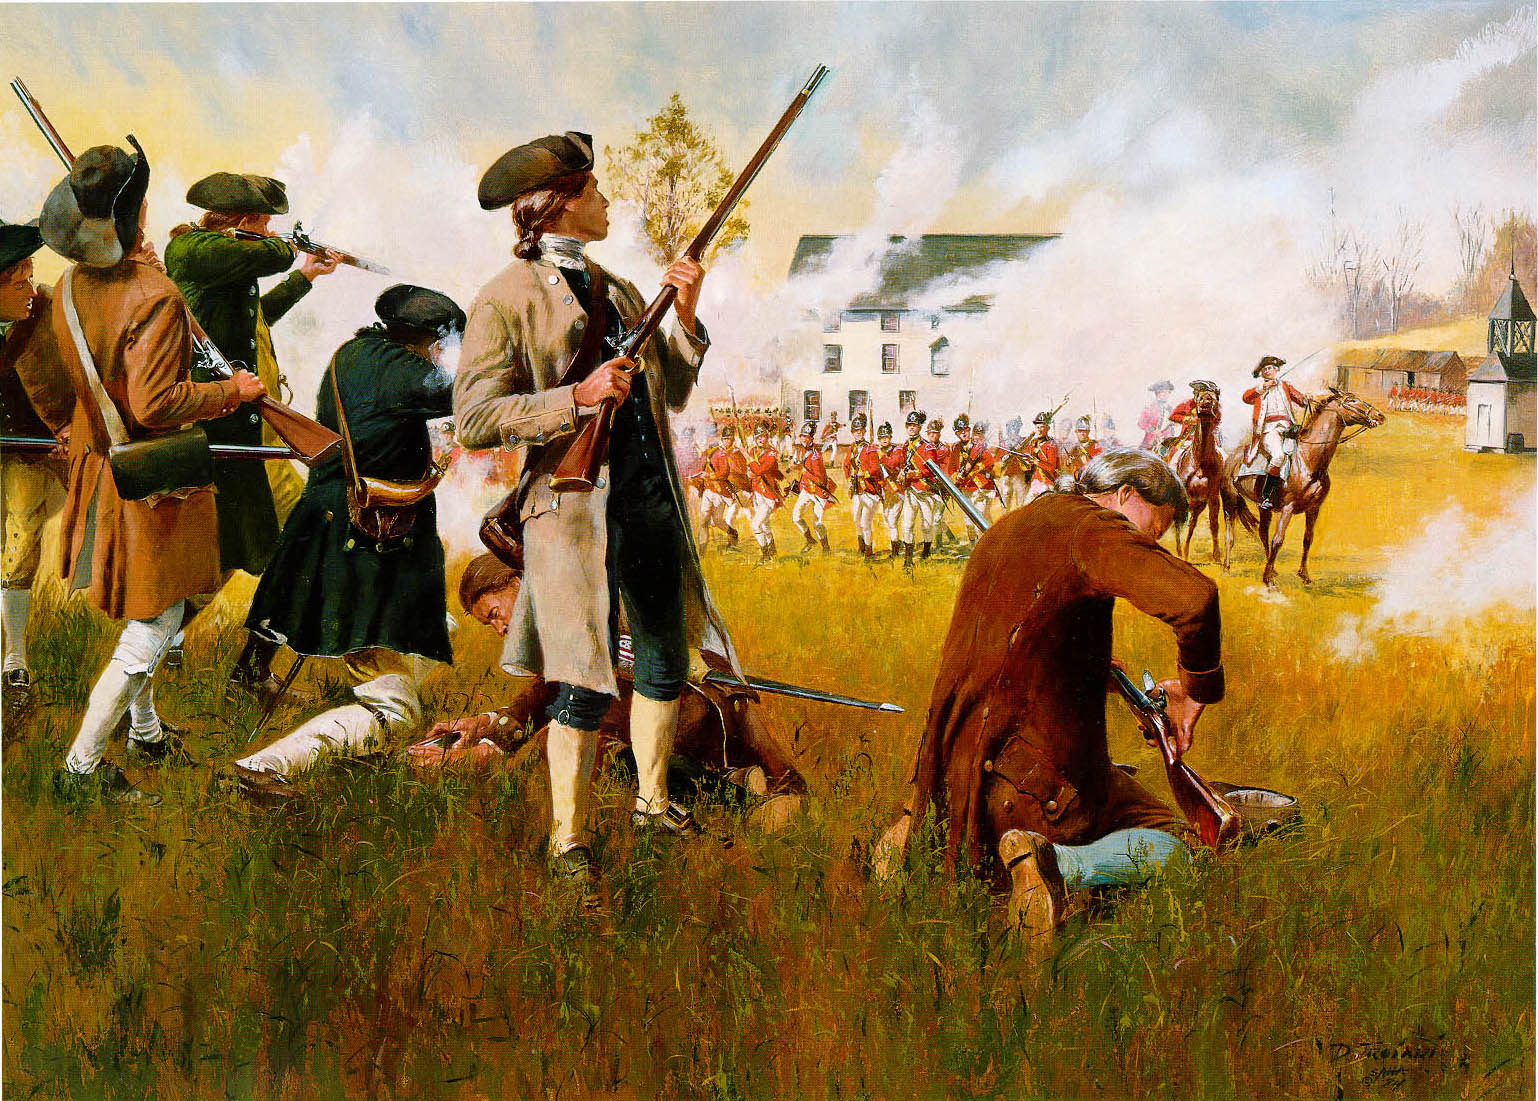 Setting Brushfires 06-10-2019: What Happened When The British Came To Take Our Founders' Arms? - Setting Brushfires